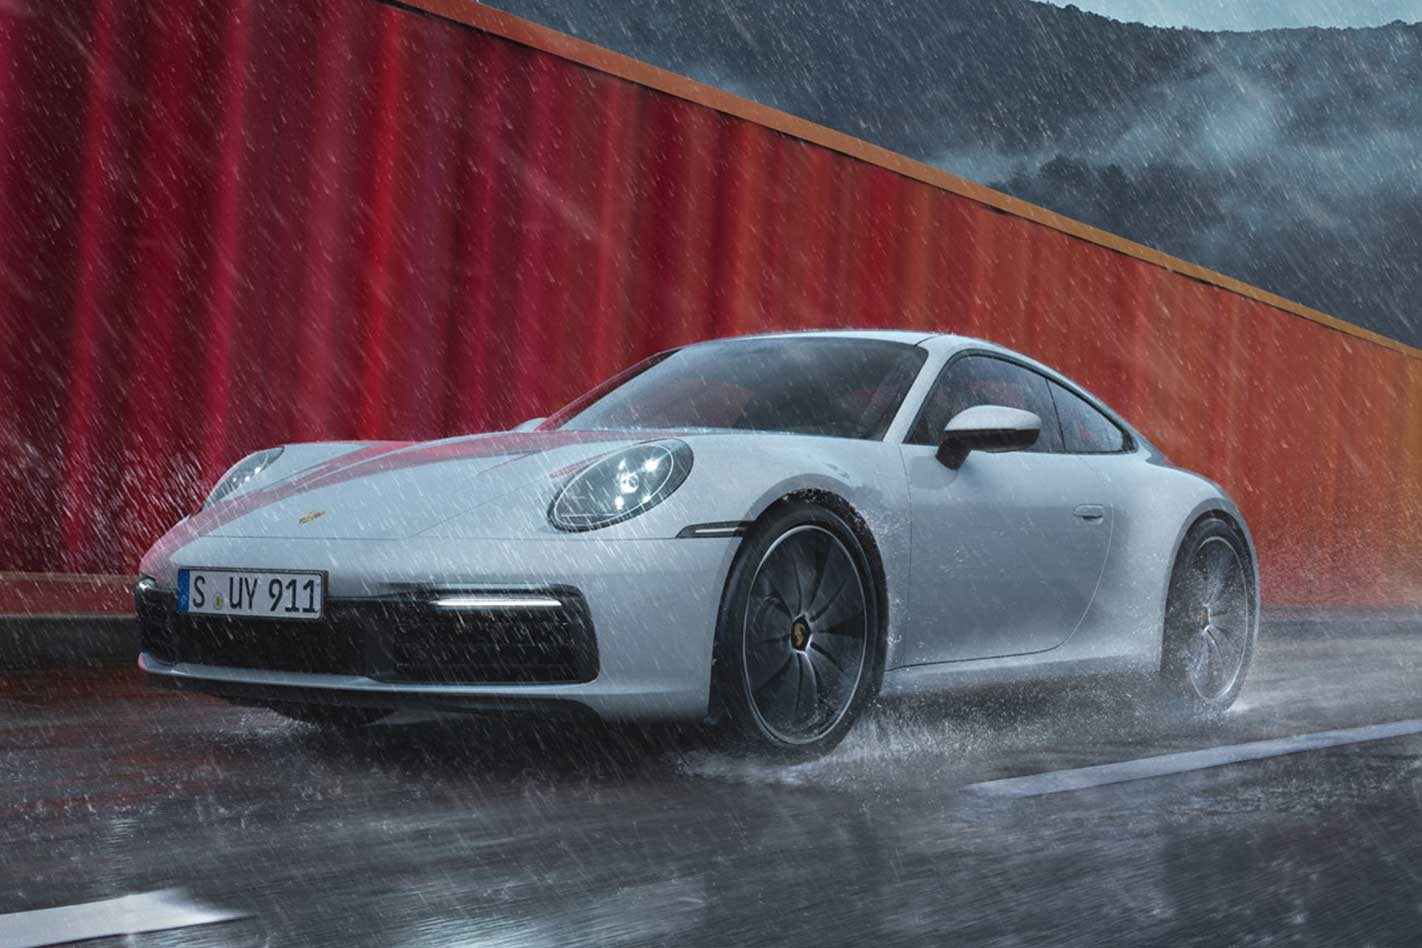 Porsche reveals its all-wheel drive 992 911 Carrera